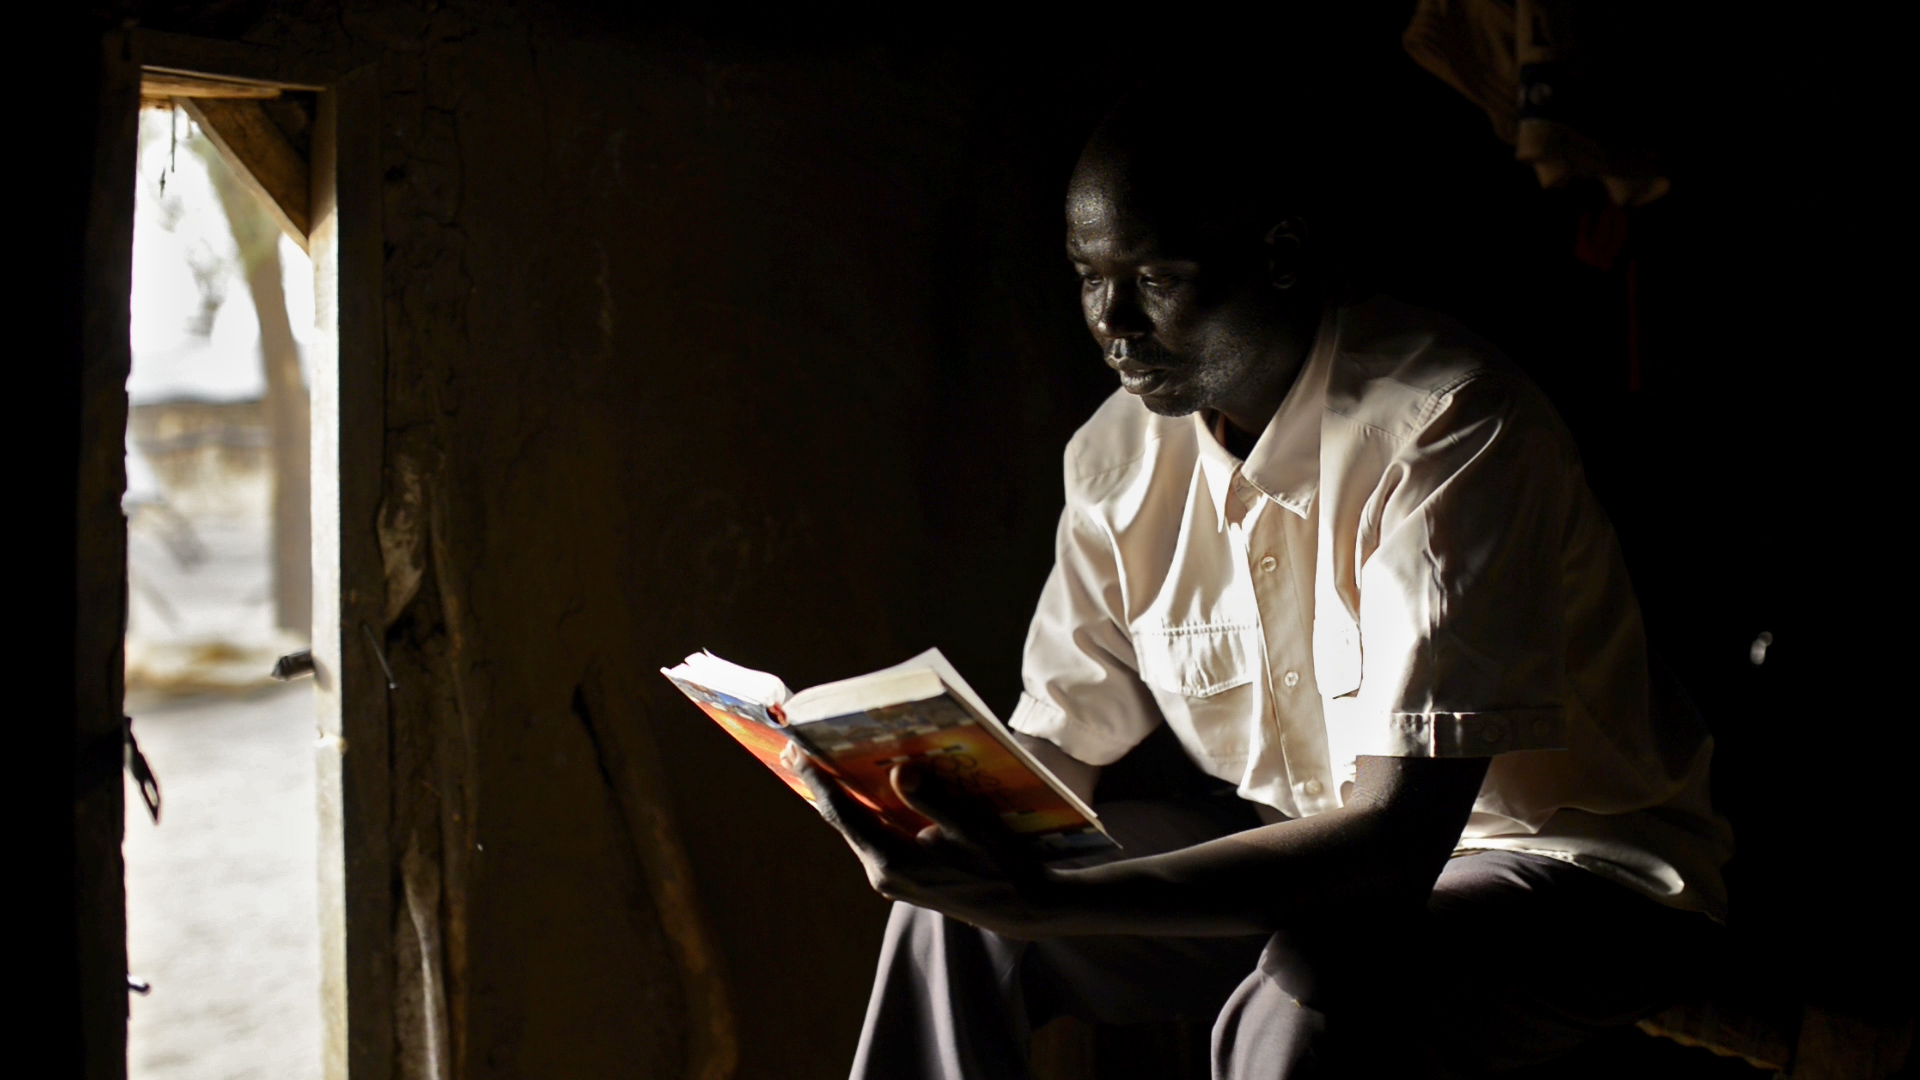 In the years of waiting to complete his education, graduate Dikem has learnt patience in the circumstances and that God protects and is with him.